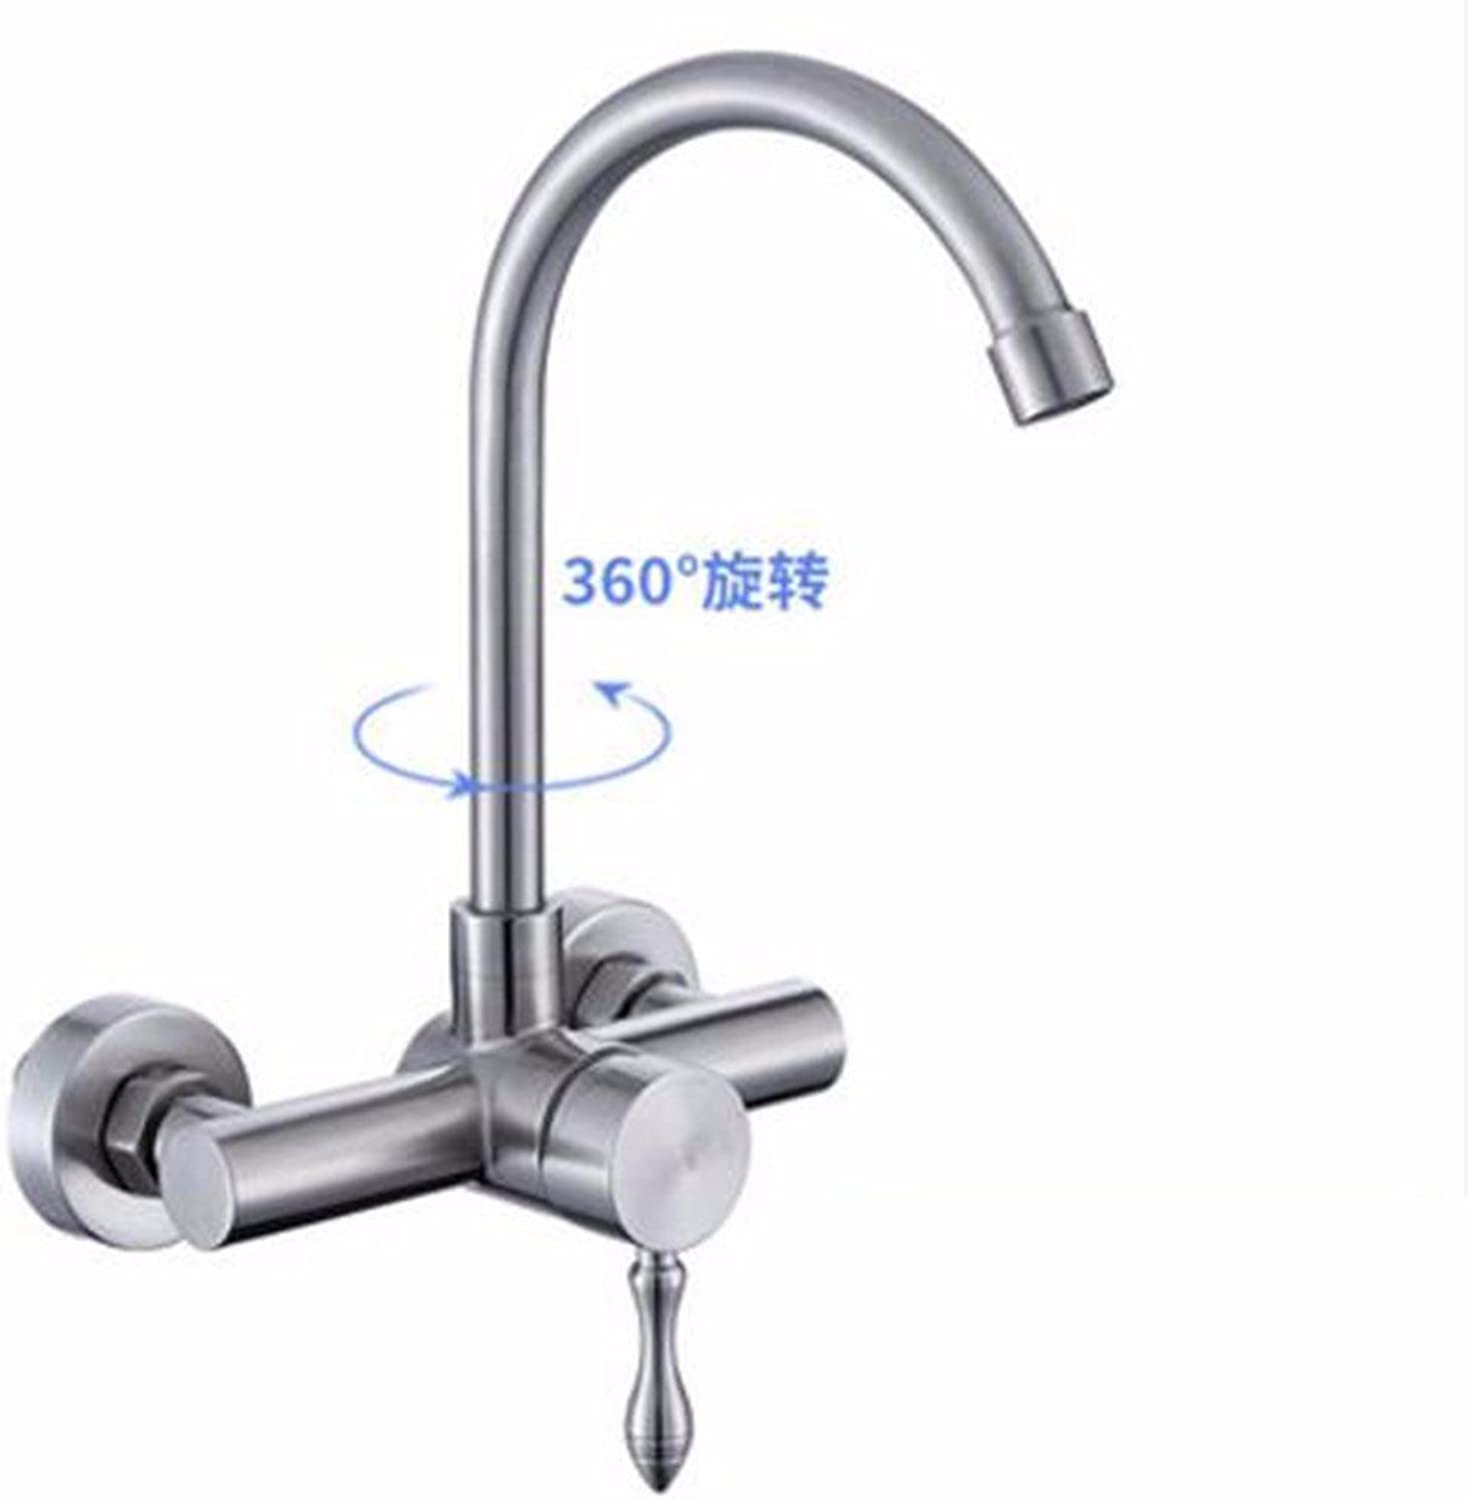 SJQKA 304 stainless steel kitchen sink mop pool balcony laundry pool double hole in-wall hot and cold faucets, D